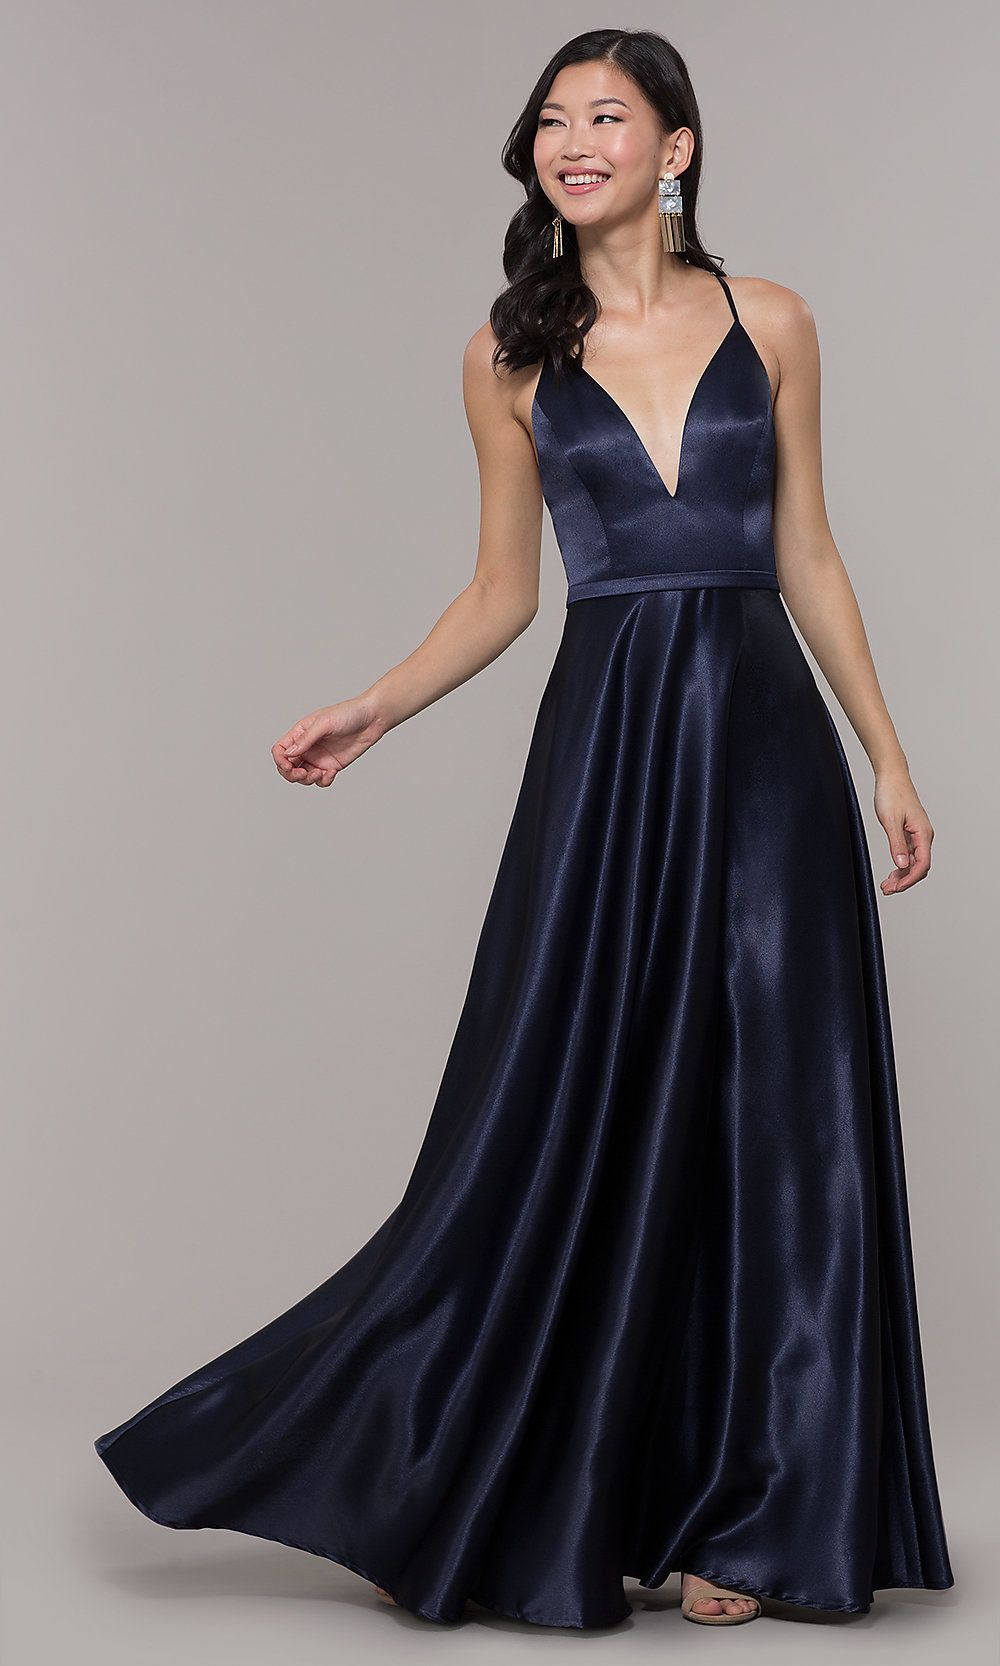 063d5089a99 Long Satin V-Neck Prom Dress by Simply in 2019